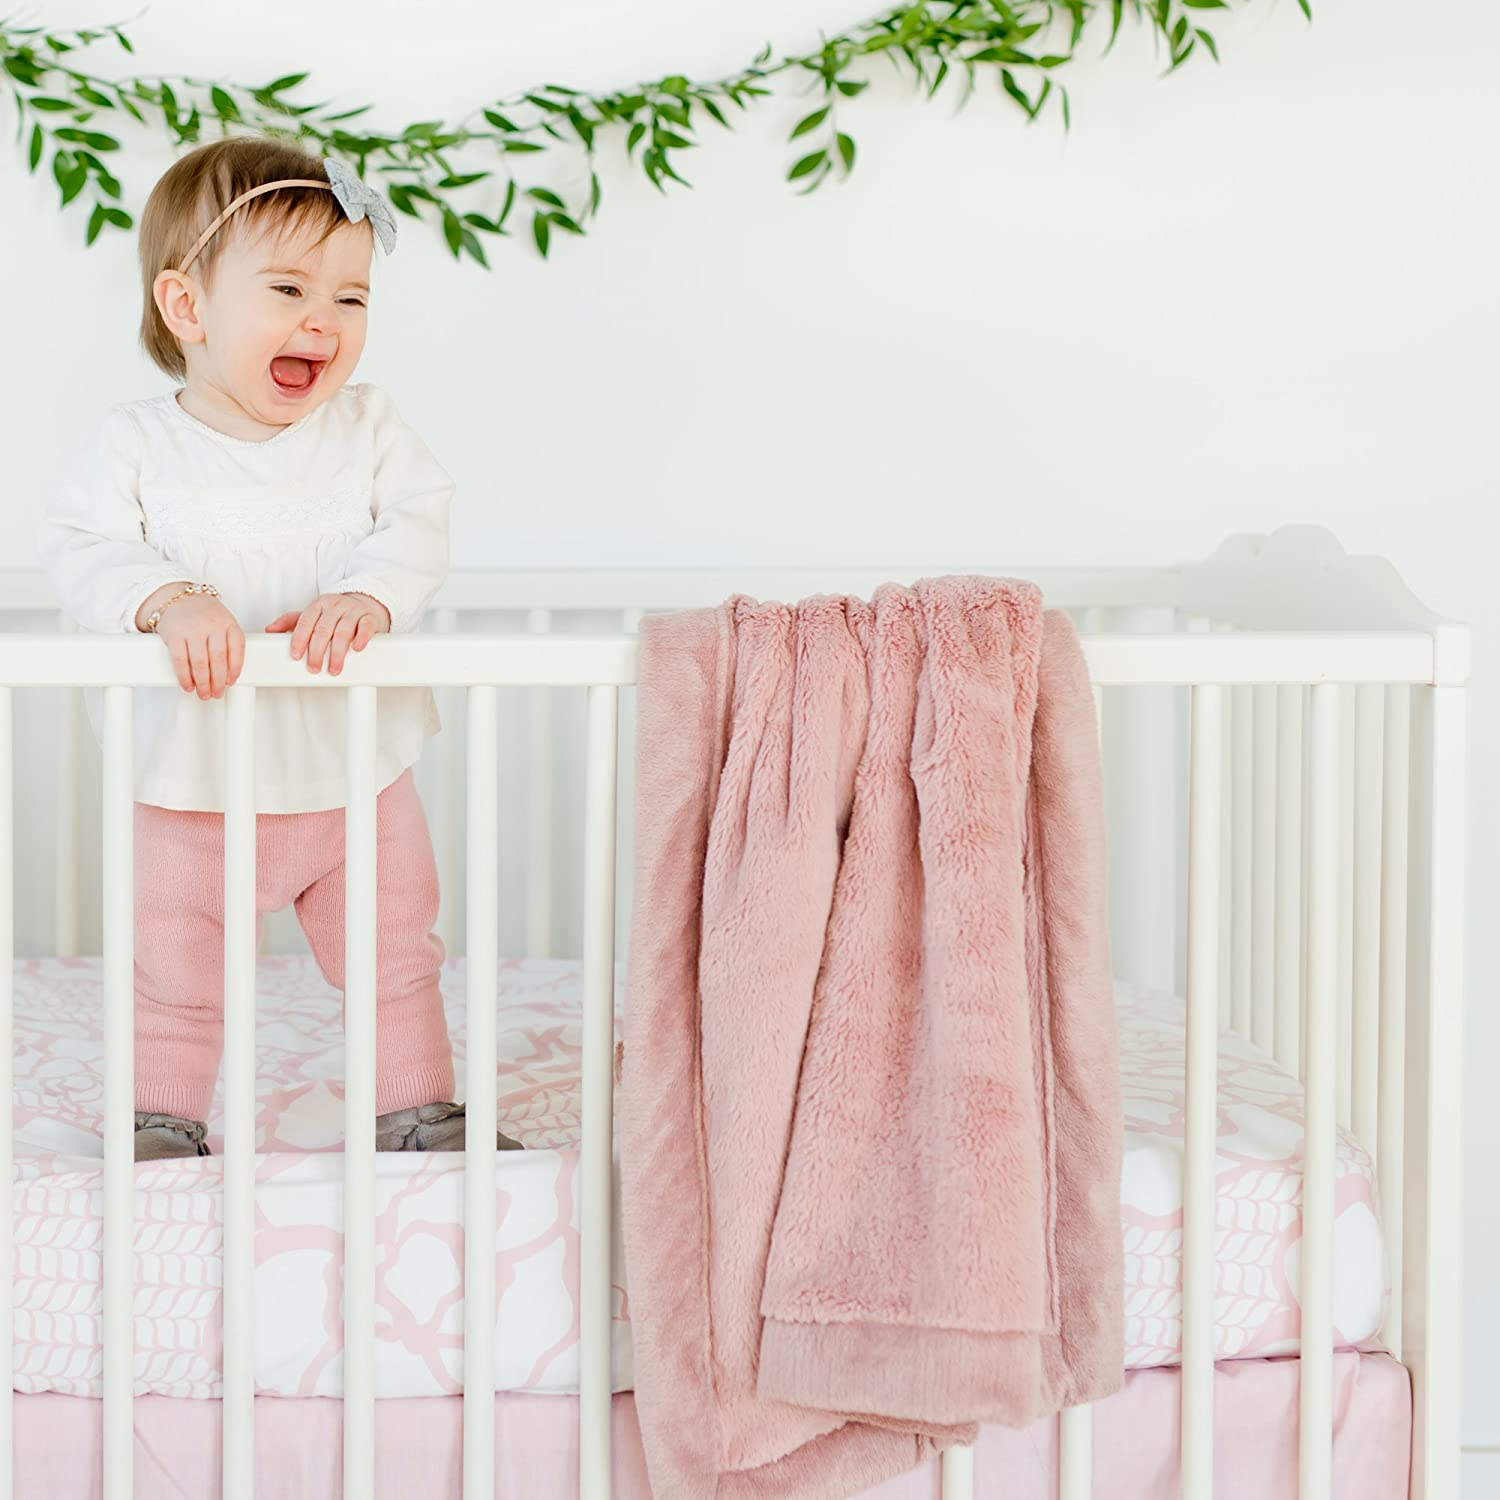 Ballet Slipper Pink, Receiving Blanket 30 x 40 Saranoni Receiving Blankets for Babies Super Soft Boutique Quality Lush Luxury Baby Blanket